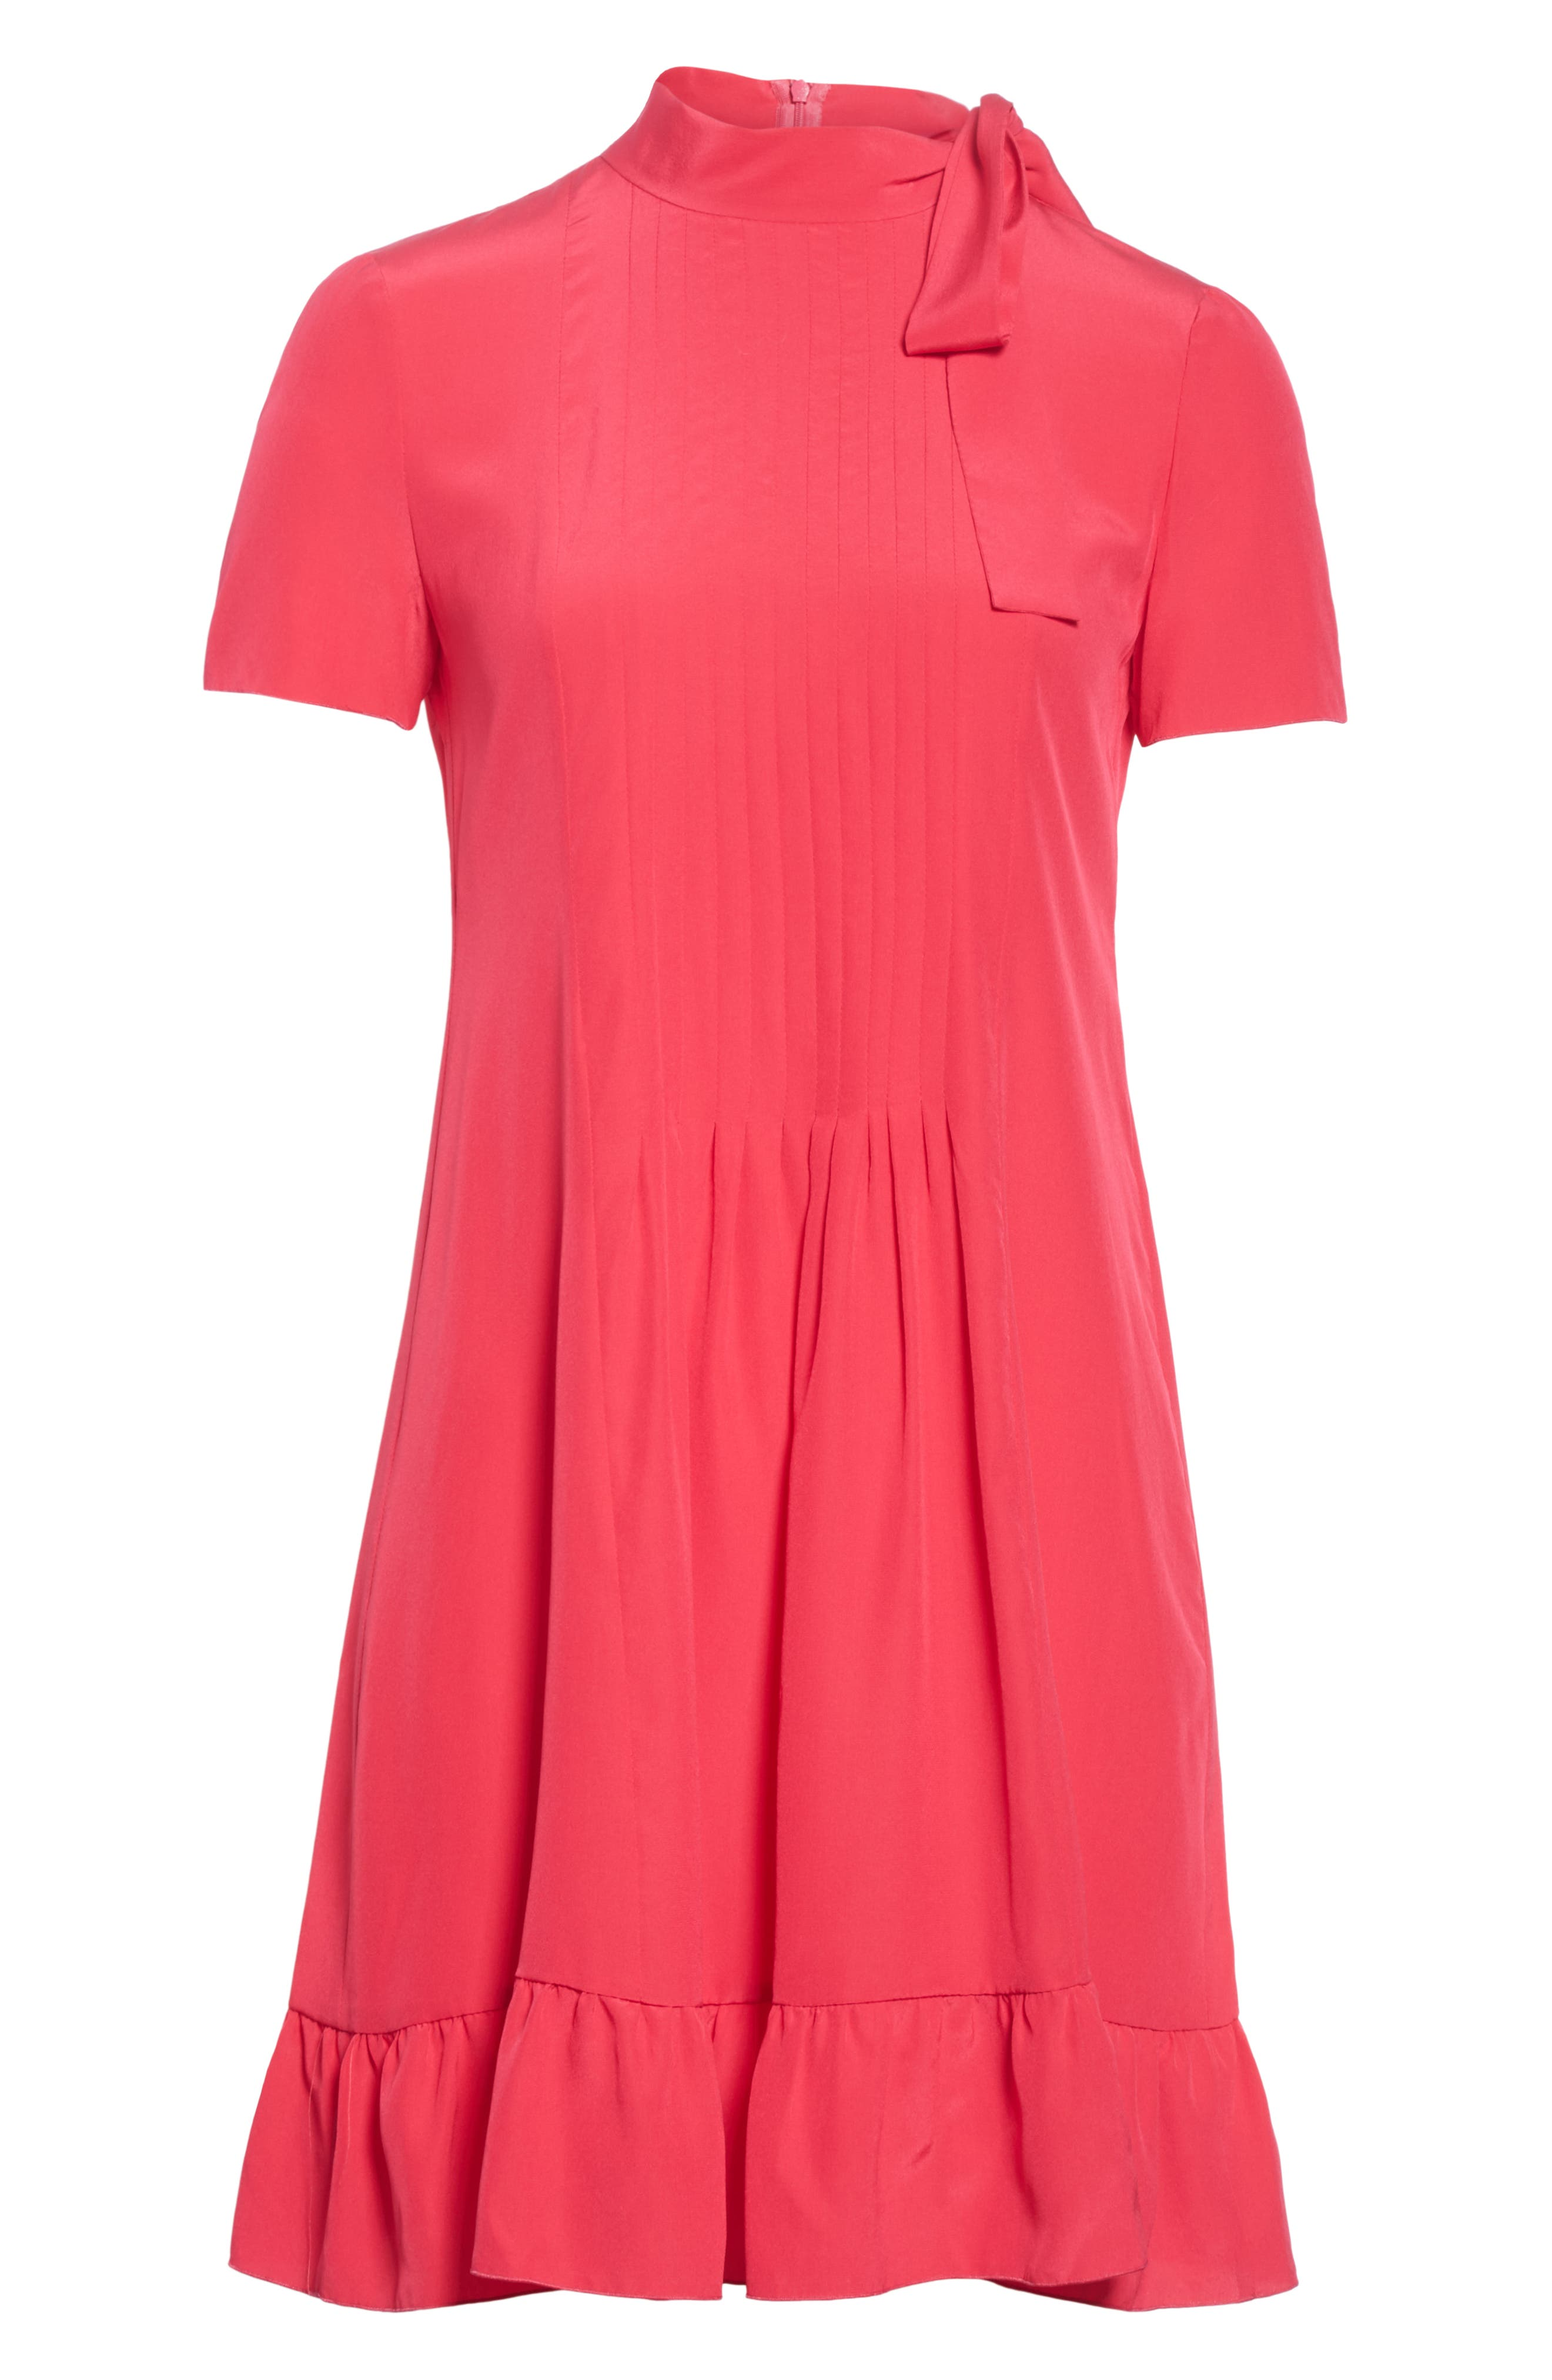 RED VALENTINO,                             Tie Neck Pleated Silk Dress,                             Alternate thumbnail 6, color,                             600